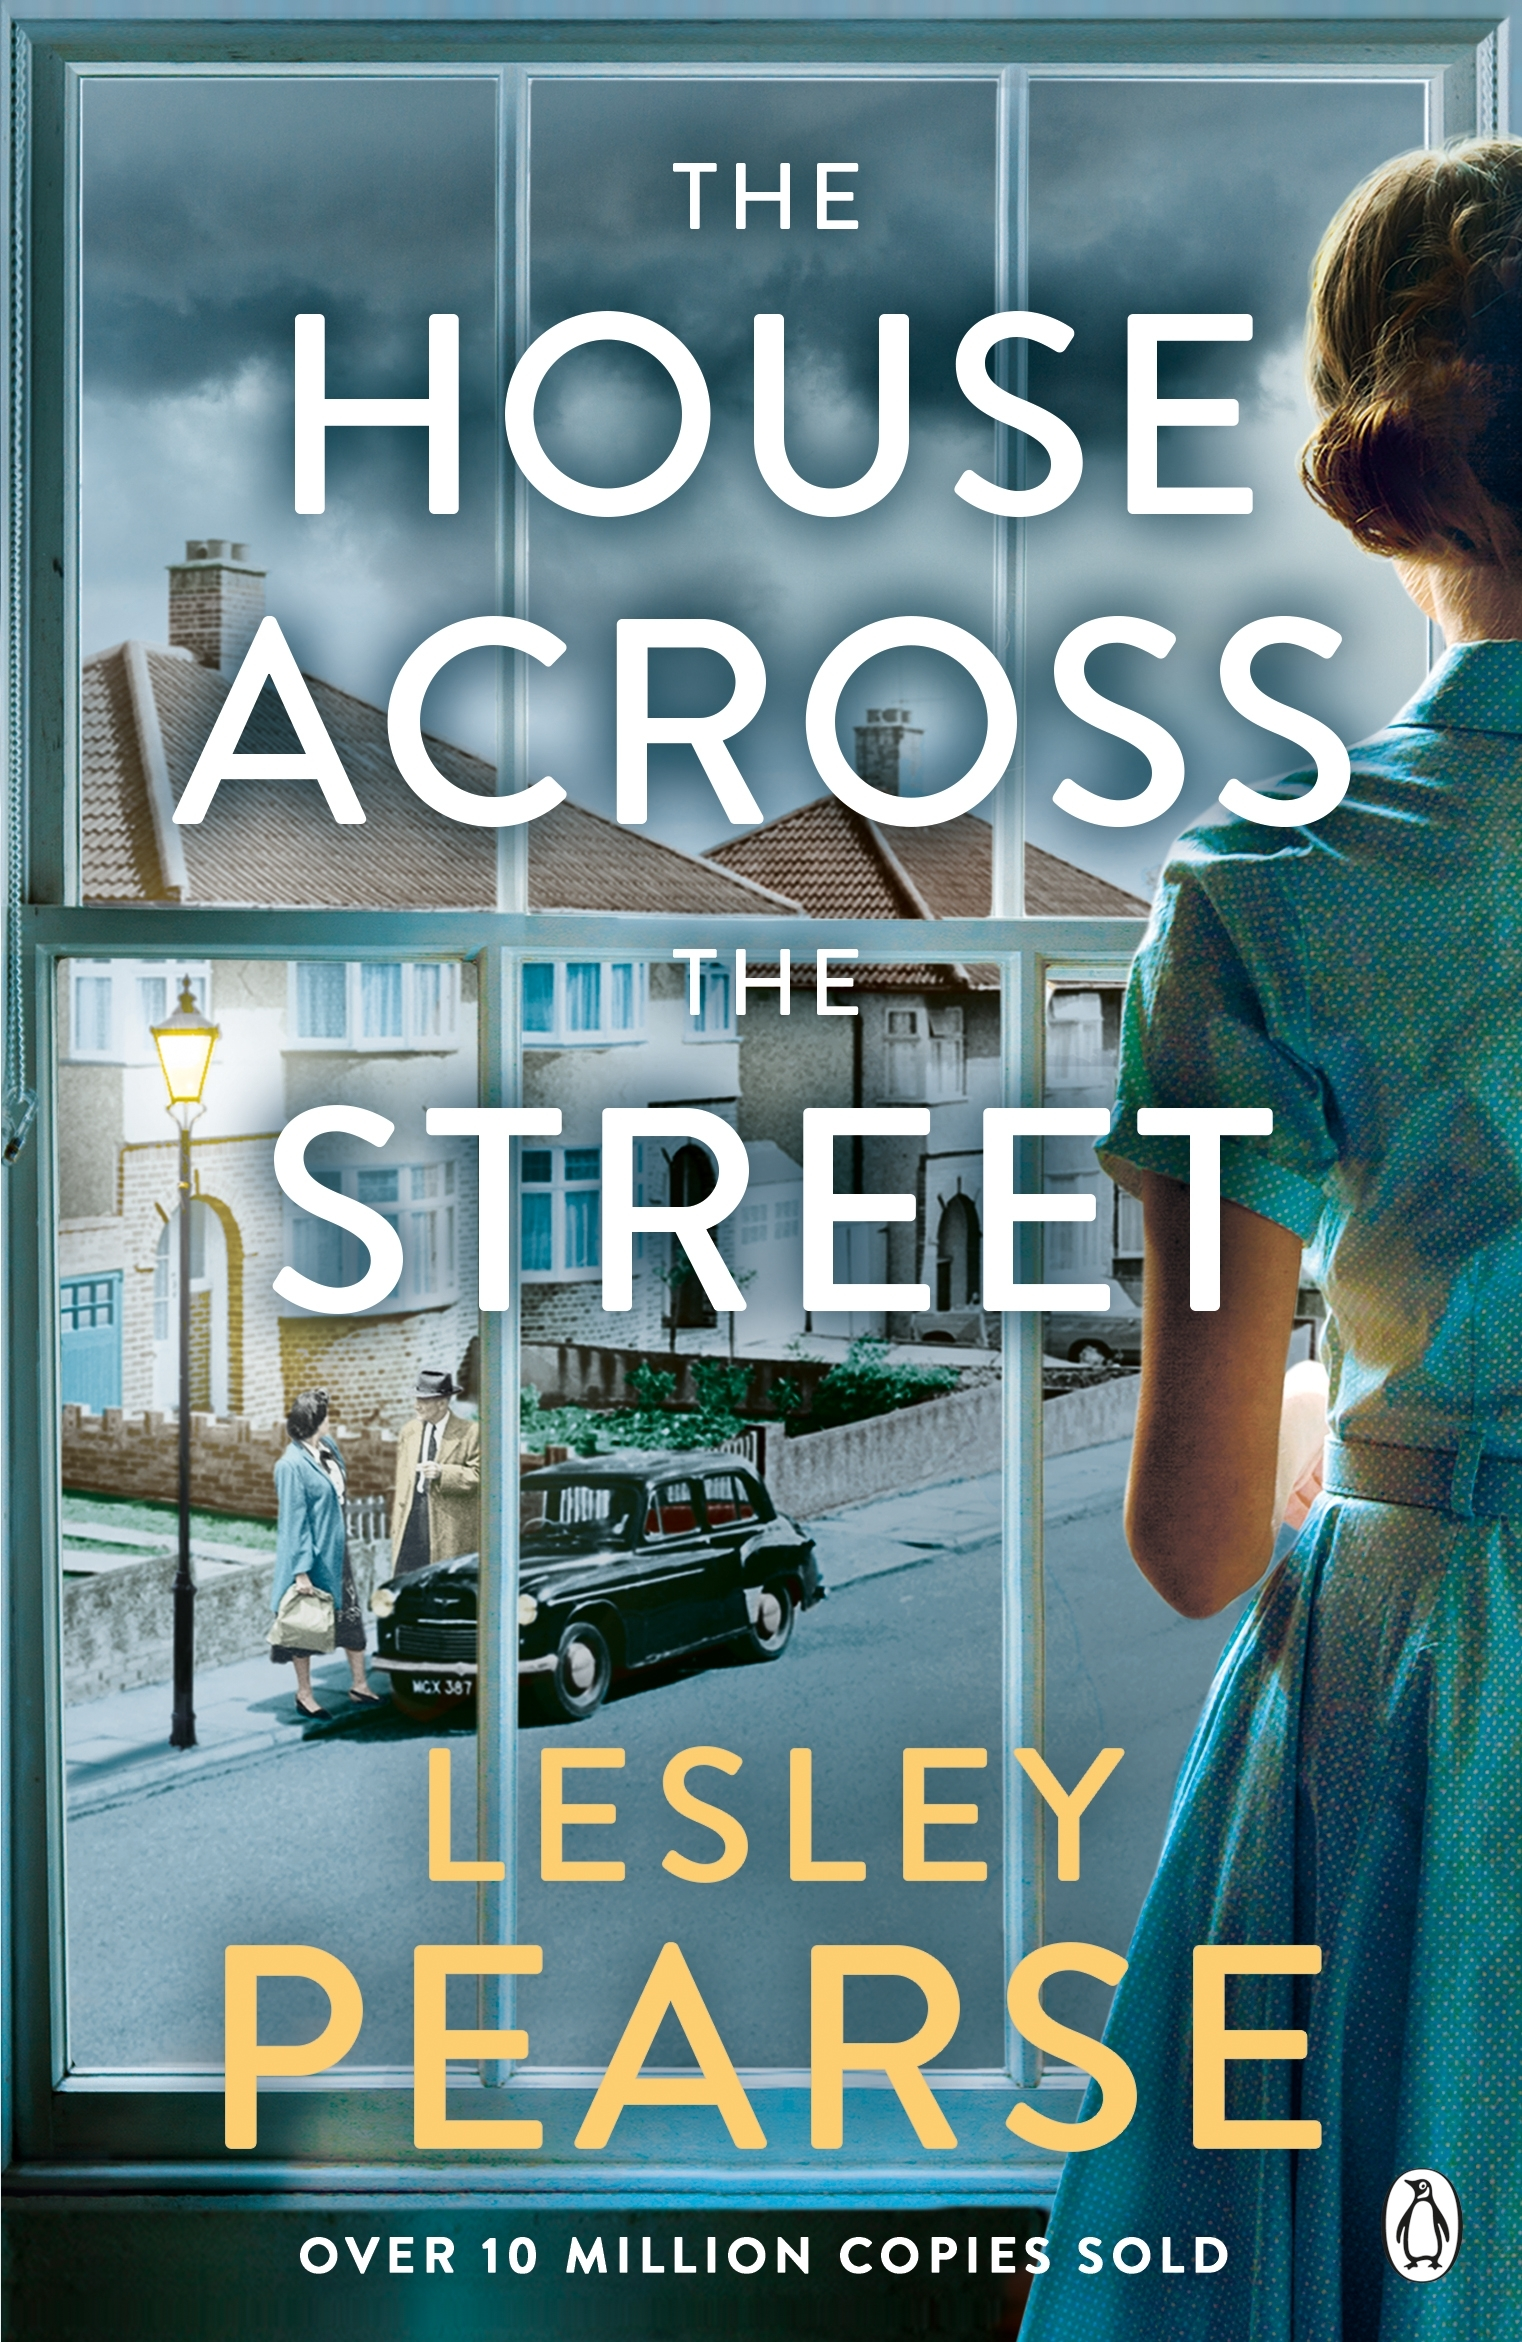 The House Across the Street by Lesley Pearse - Penguin Books